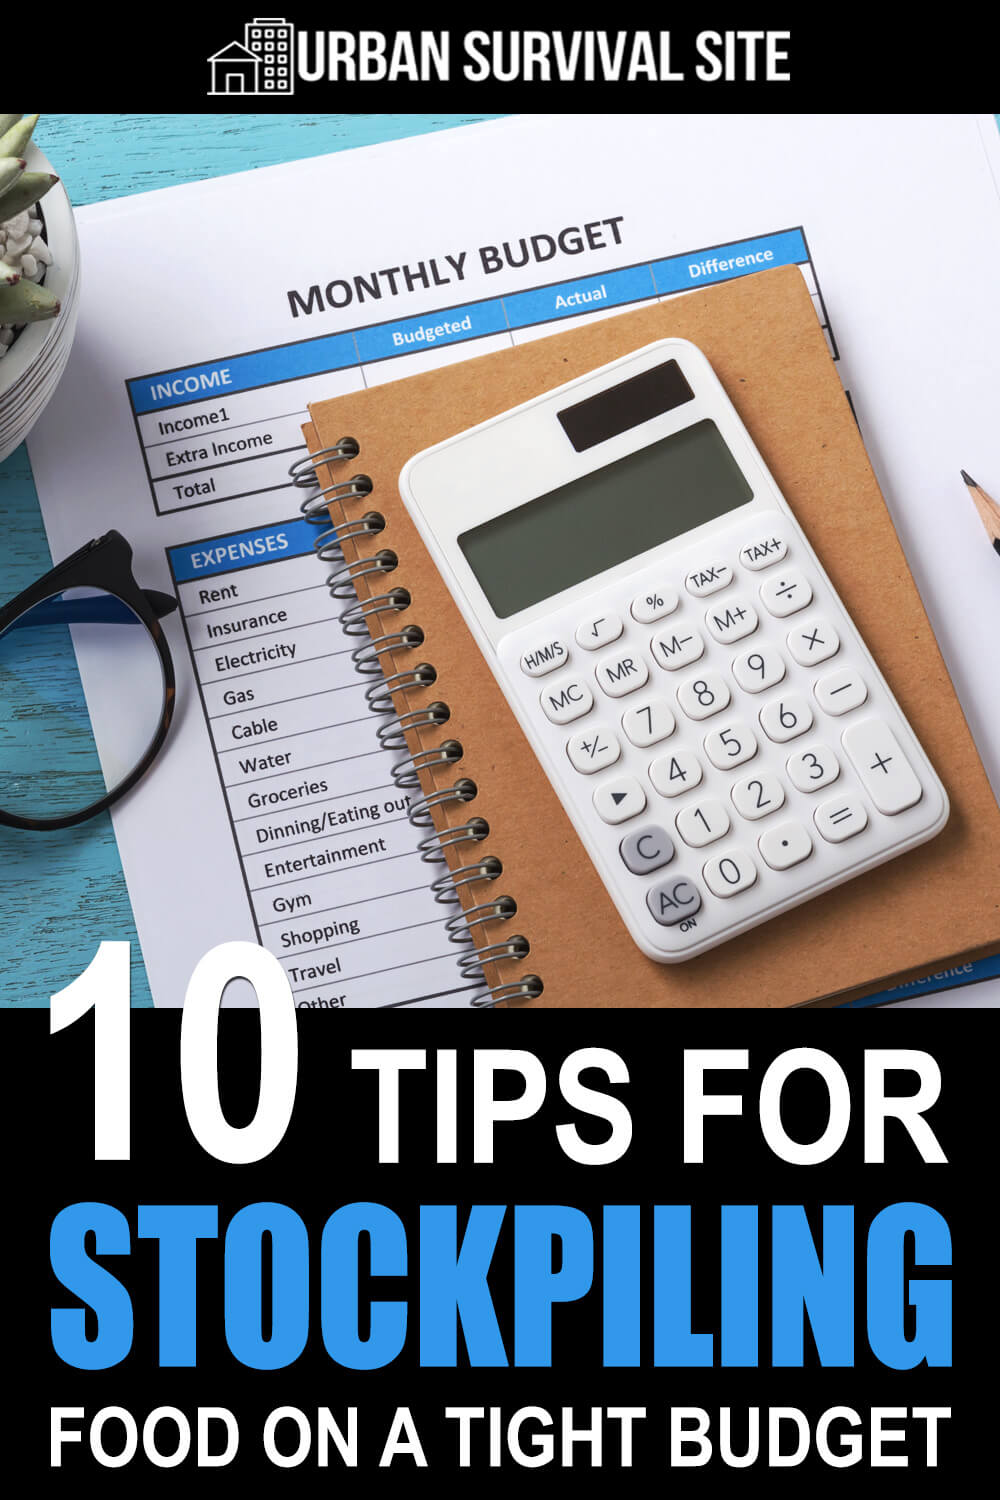 10 Tips For Stockpiling Food On A Tight Budget